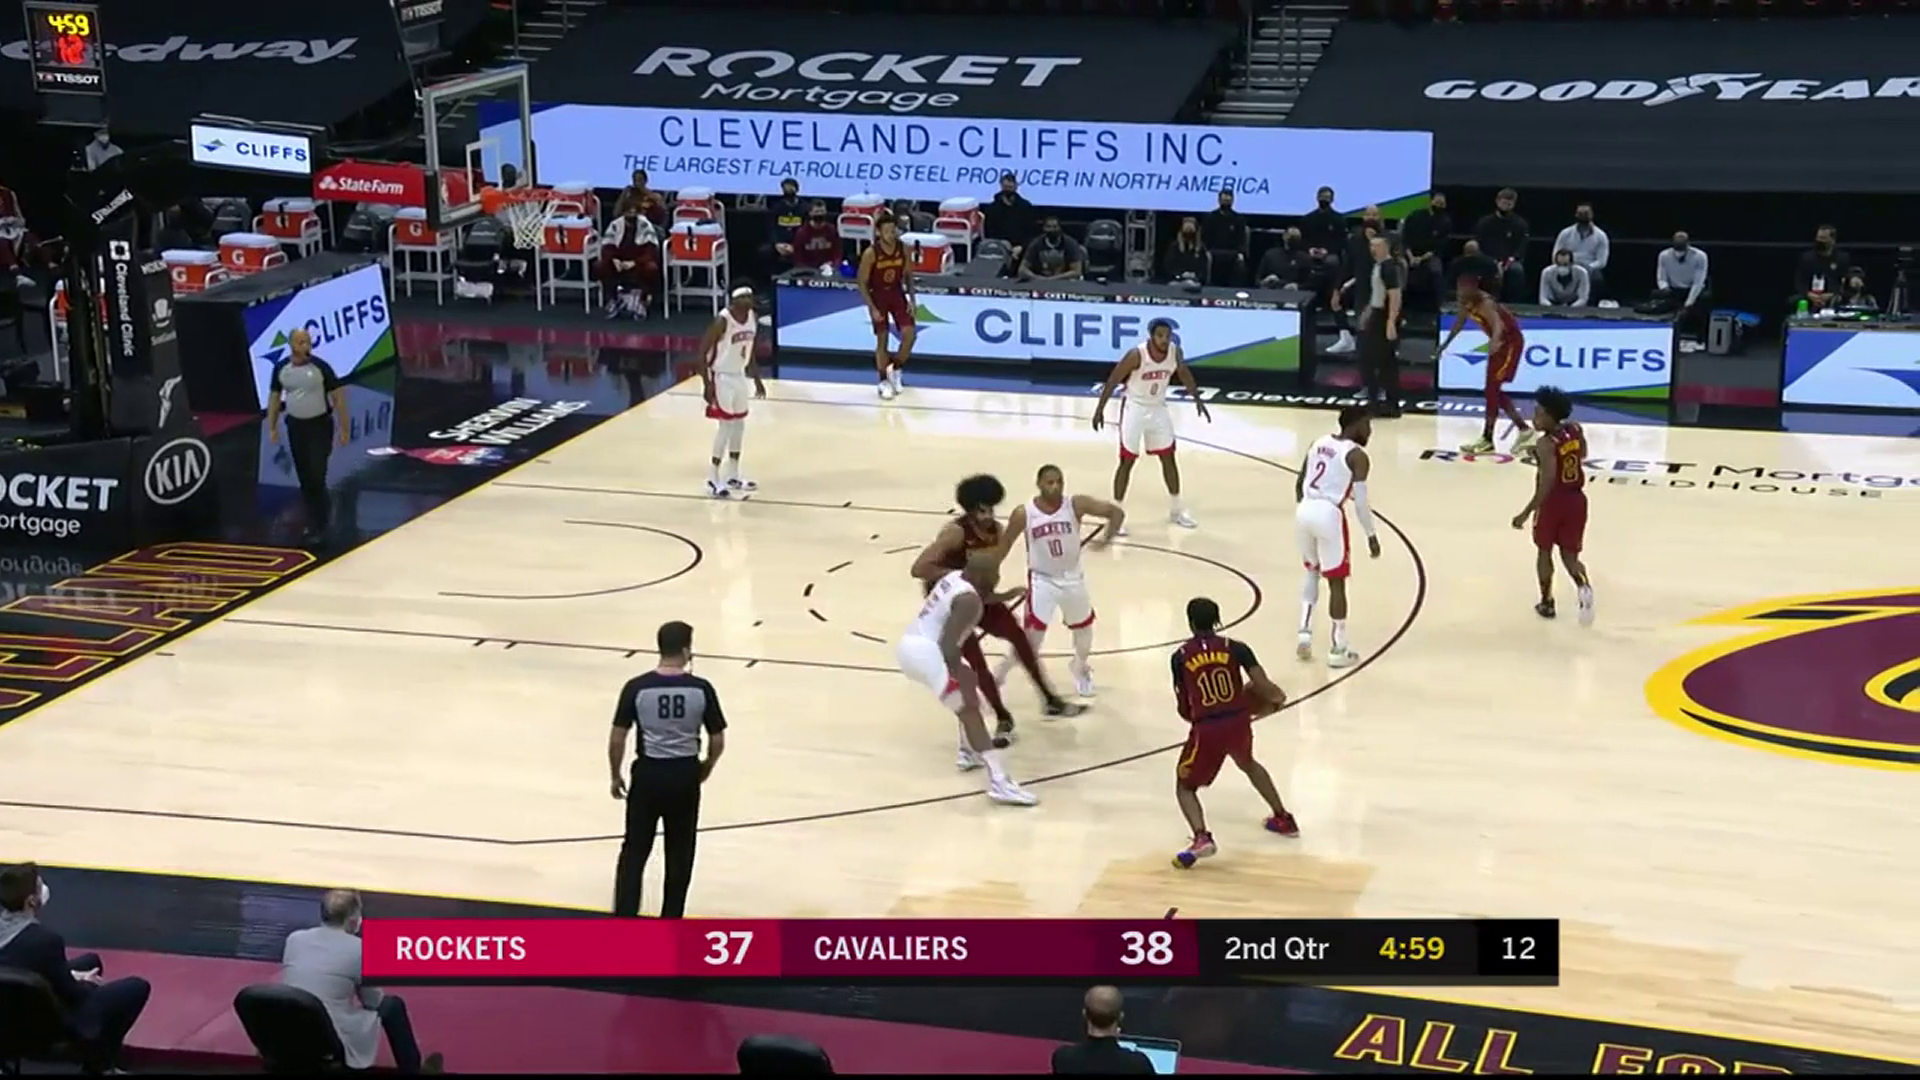 Garland Passes, Allen Finishes in the Paint